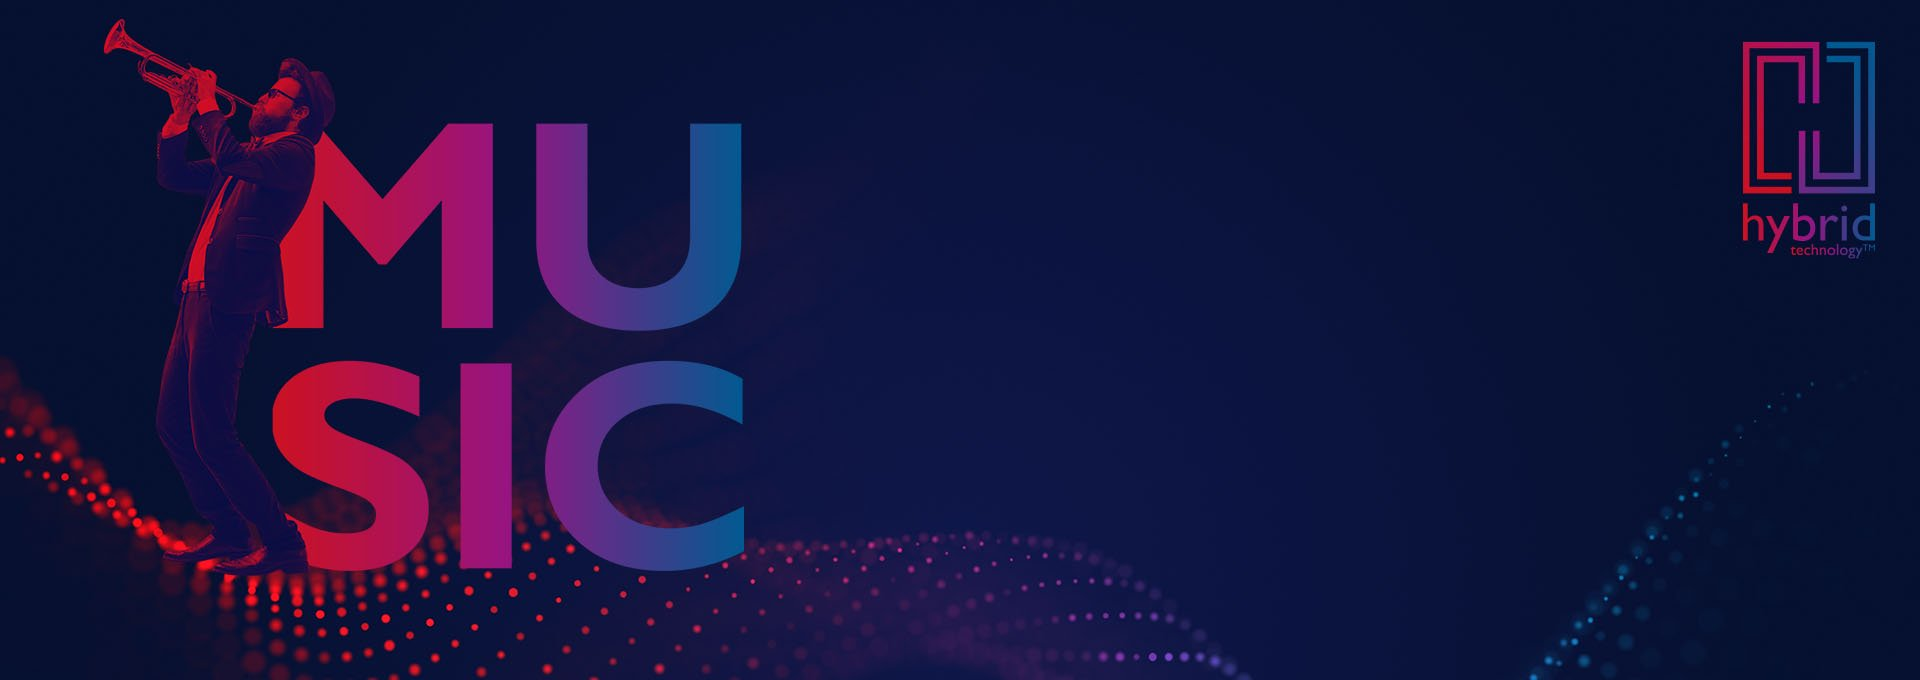 Red/blue image of woman dancing next to MUSIC wordmark, Bernafon Alpha's Hybrid Technology logo and a sound wave in the back